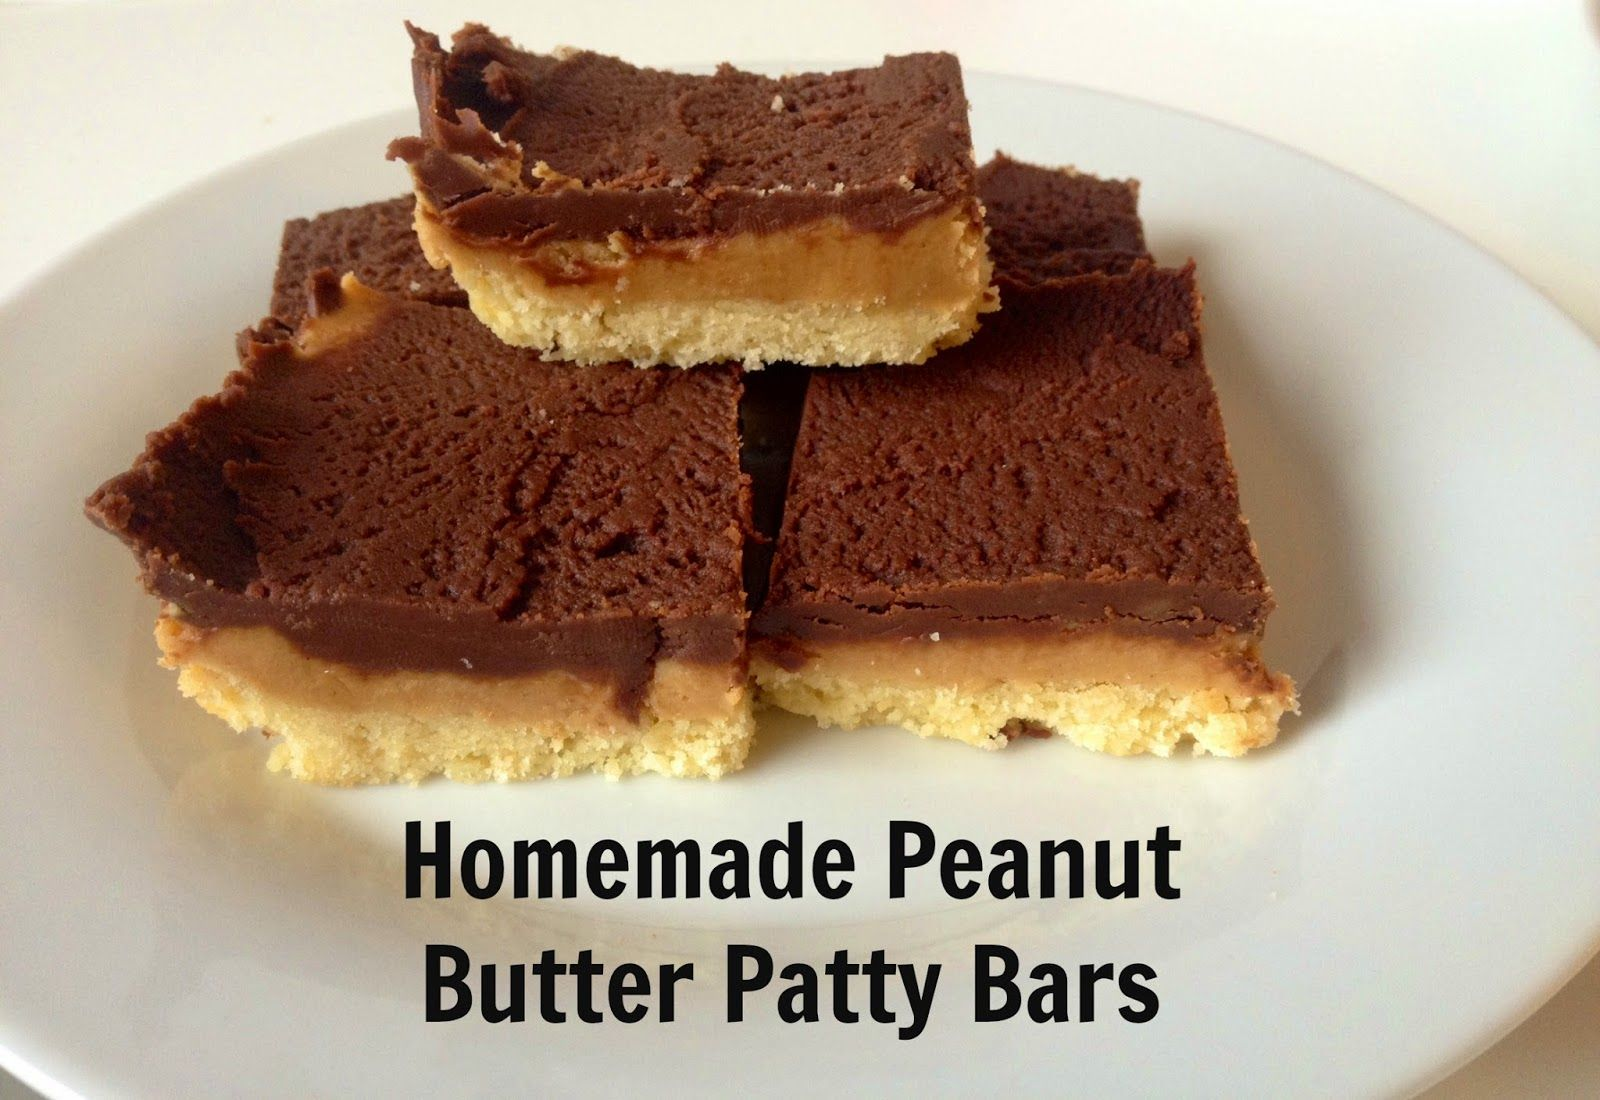 Homemade Peanut Butter Patty Bars Recipe, or Tagalongs. These are my favorite Girl Scout Cookies, and this recipe is a delicious copycat!